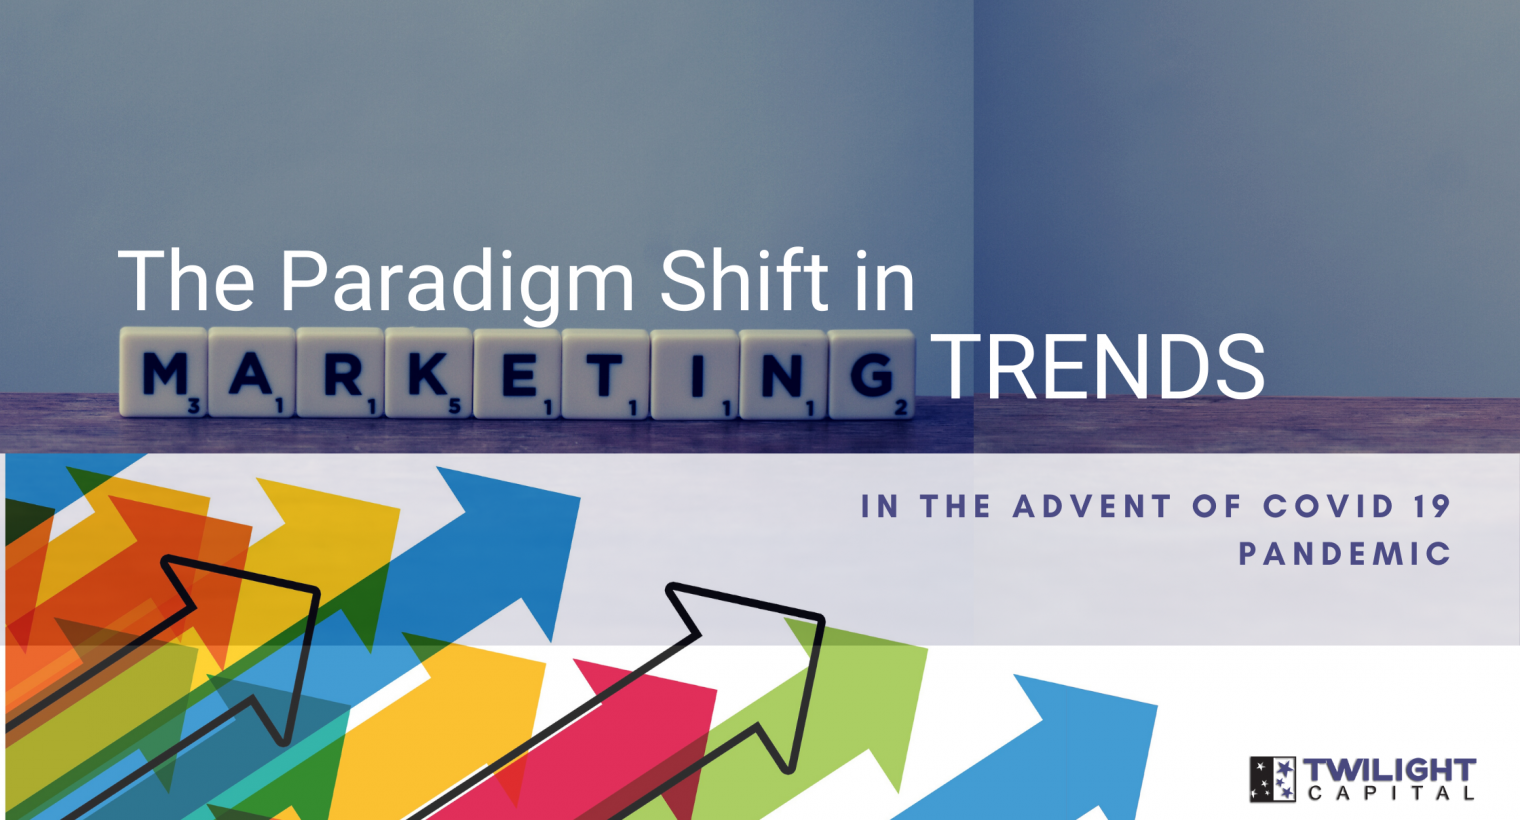 The Paradigm Shift in Marketing Trends